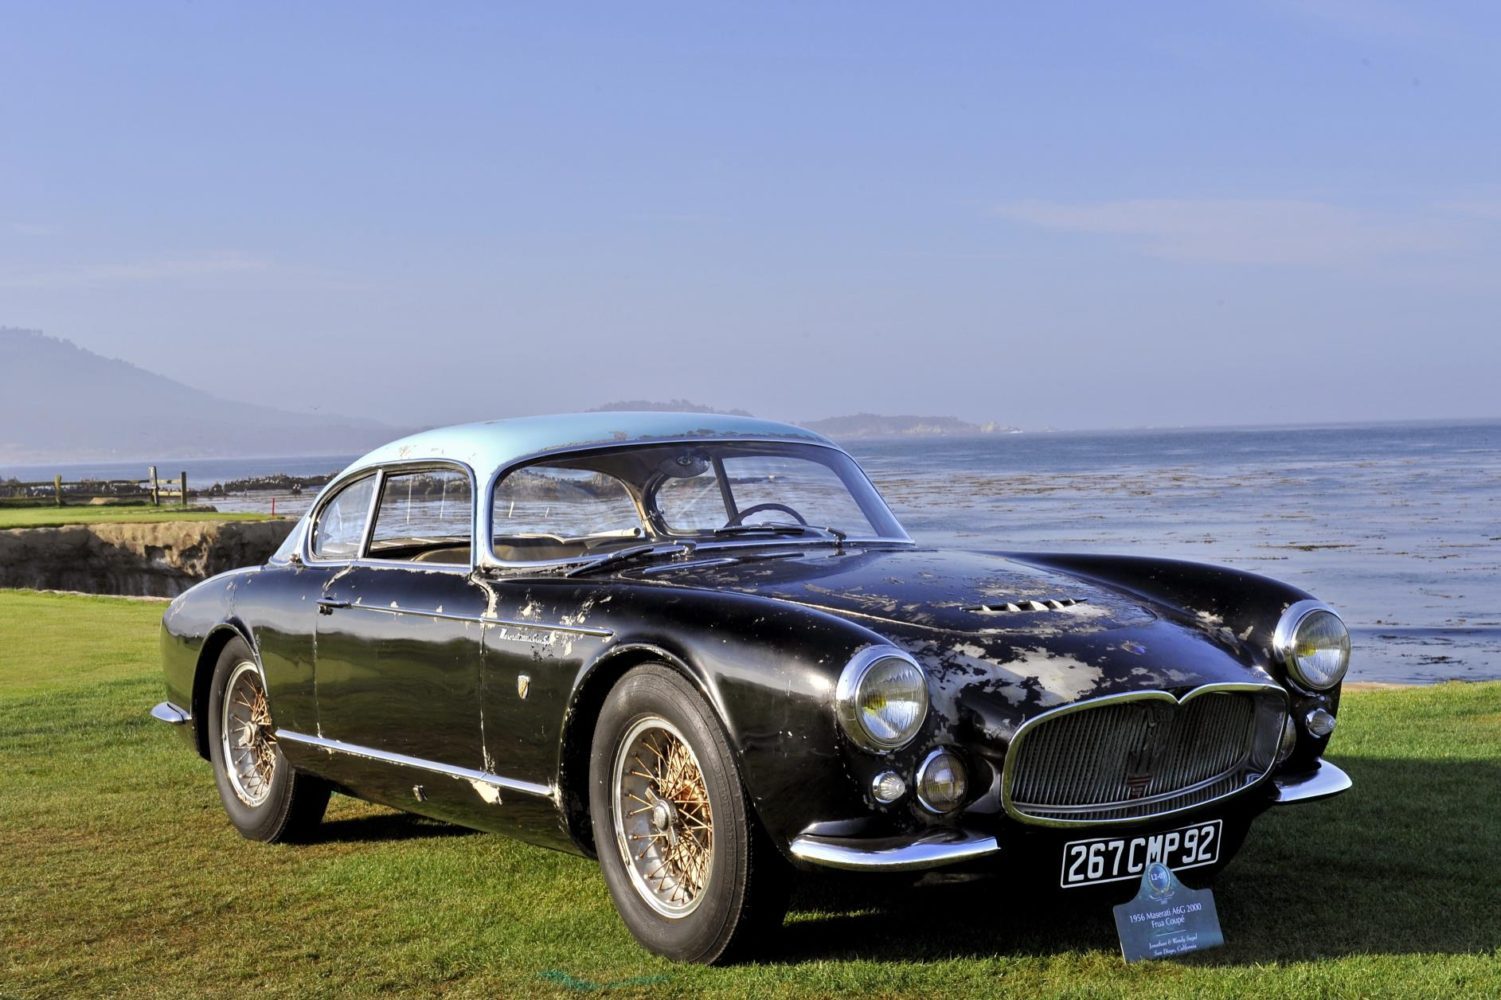 CONCOURS OF ELEGANCE TO HOST UK DEBUT OF LEGENDARY MASERATI A6G BARN FIND